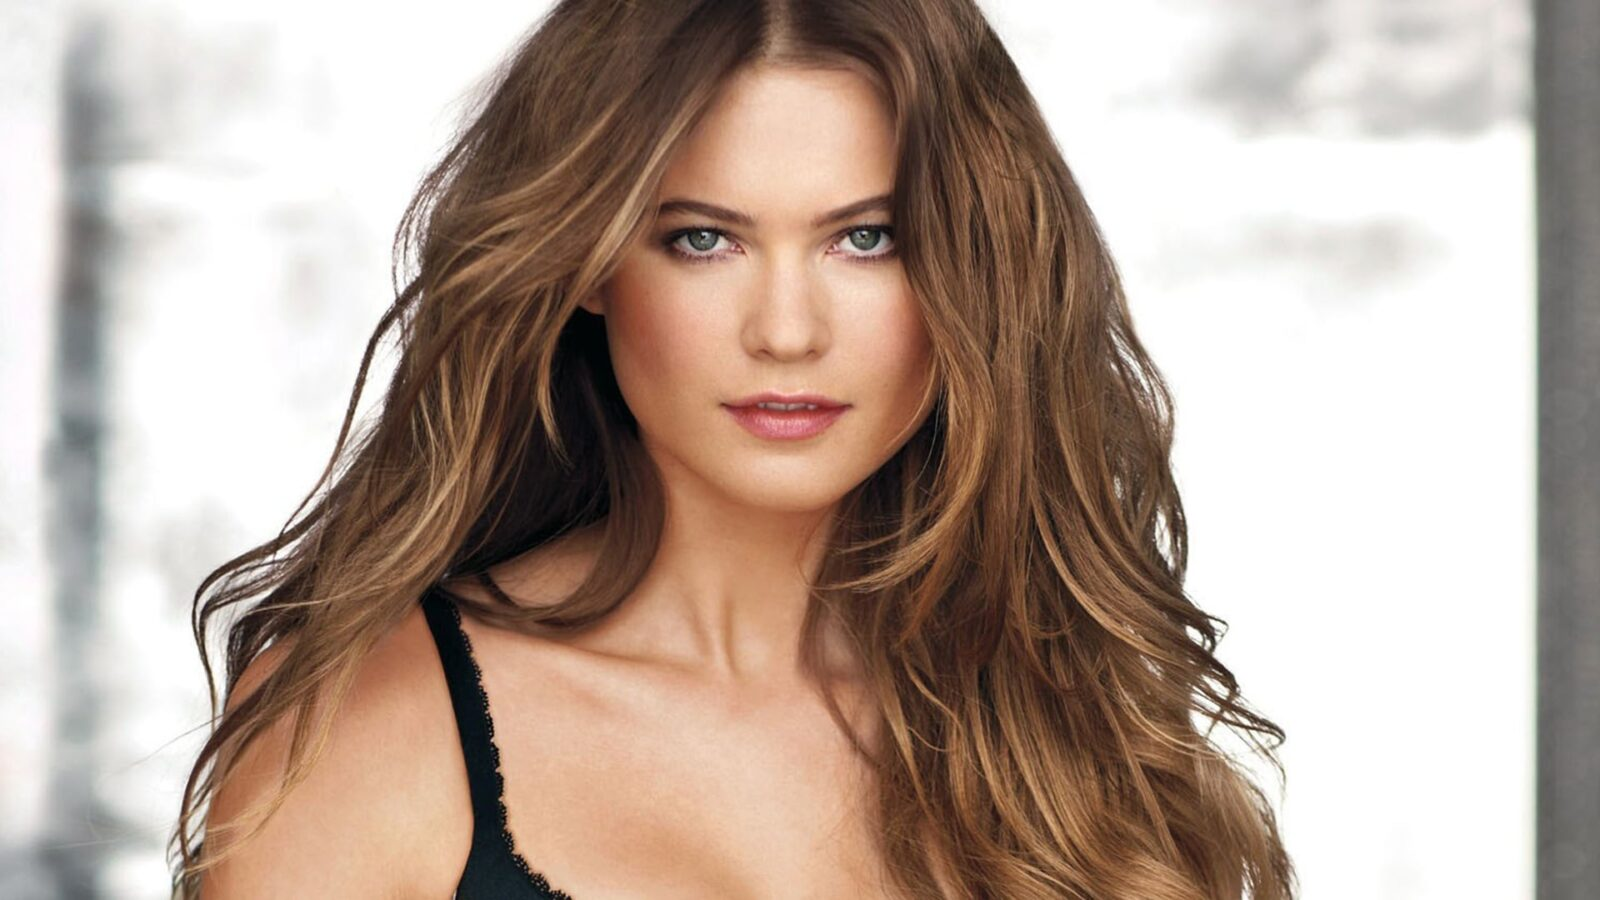 Free Wallpapers Of Cars And Bikes For Desktop 21 Behati Prinsloo Hd Wallpapers Free Download